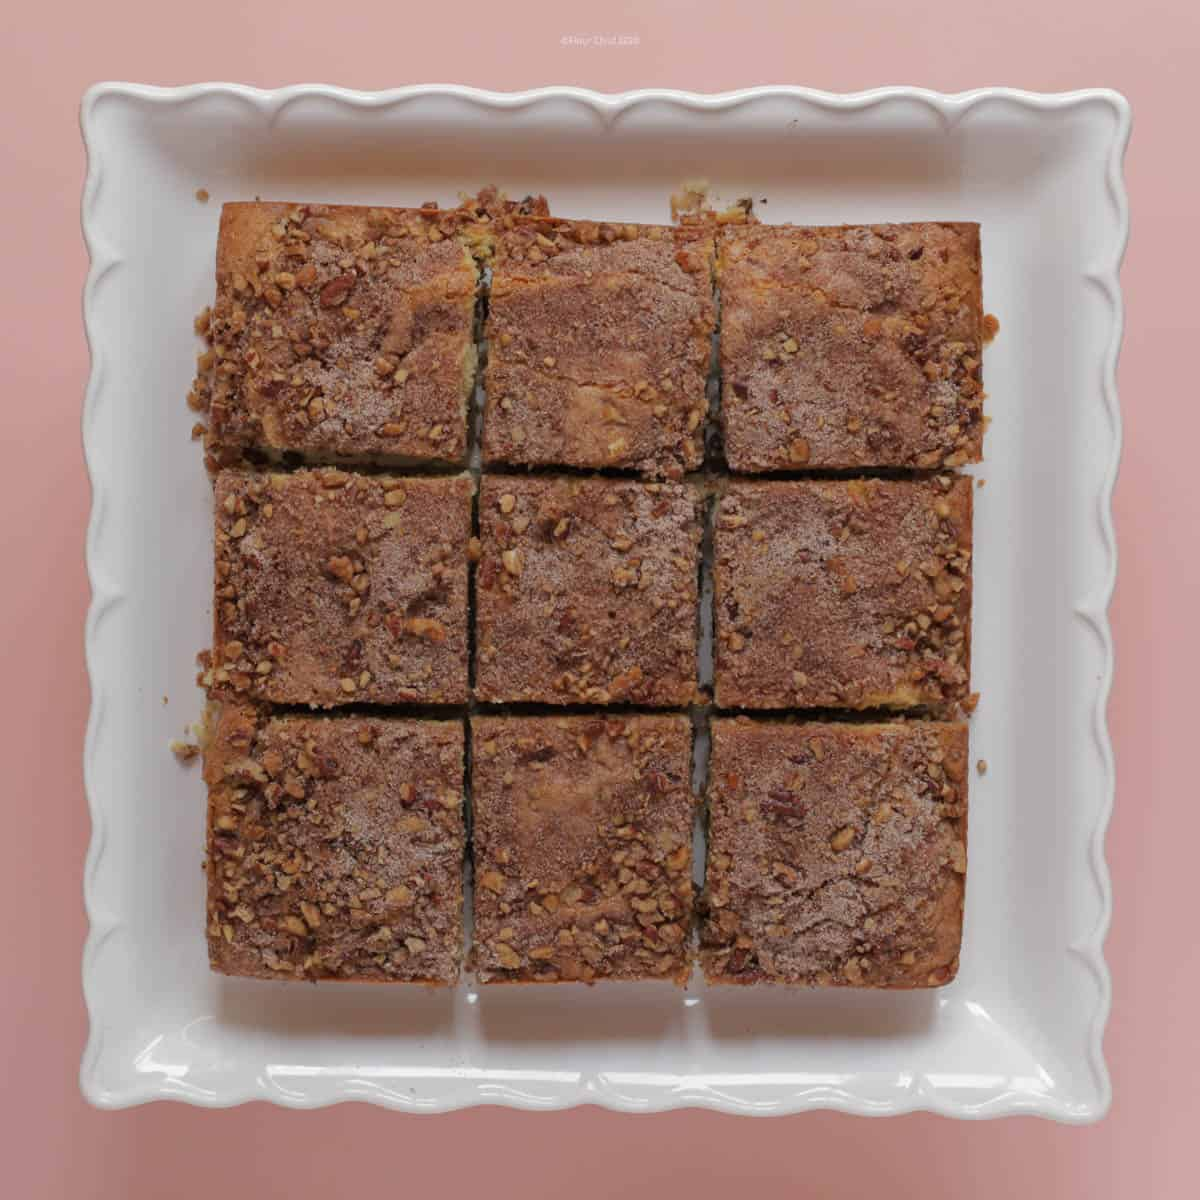 Coffee Cake cut into 9 squares sitting on a pedestal platter